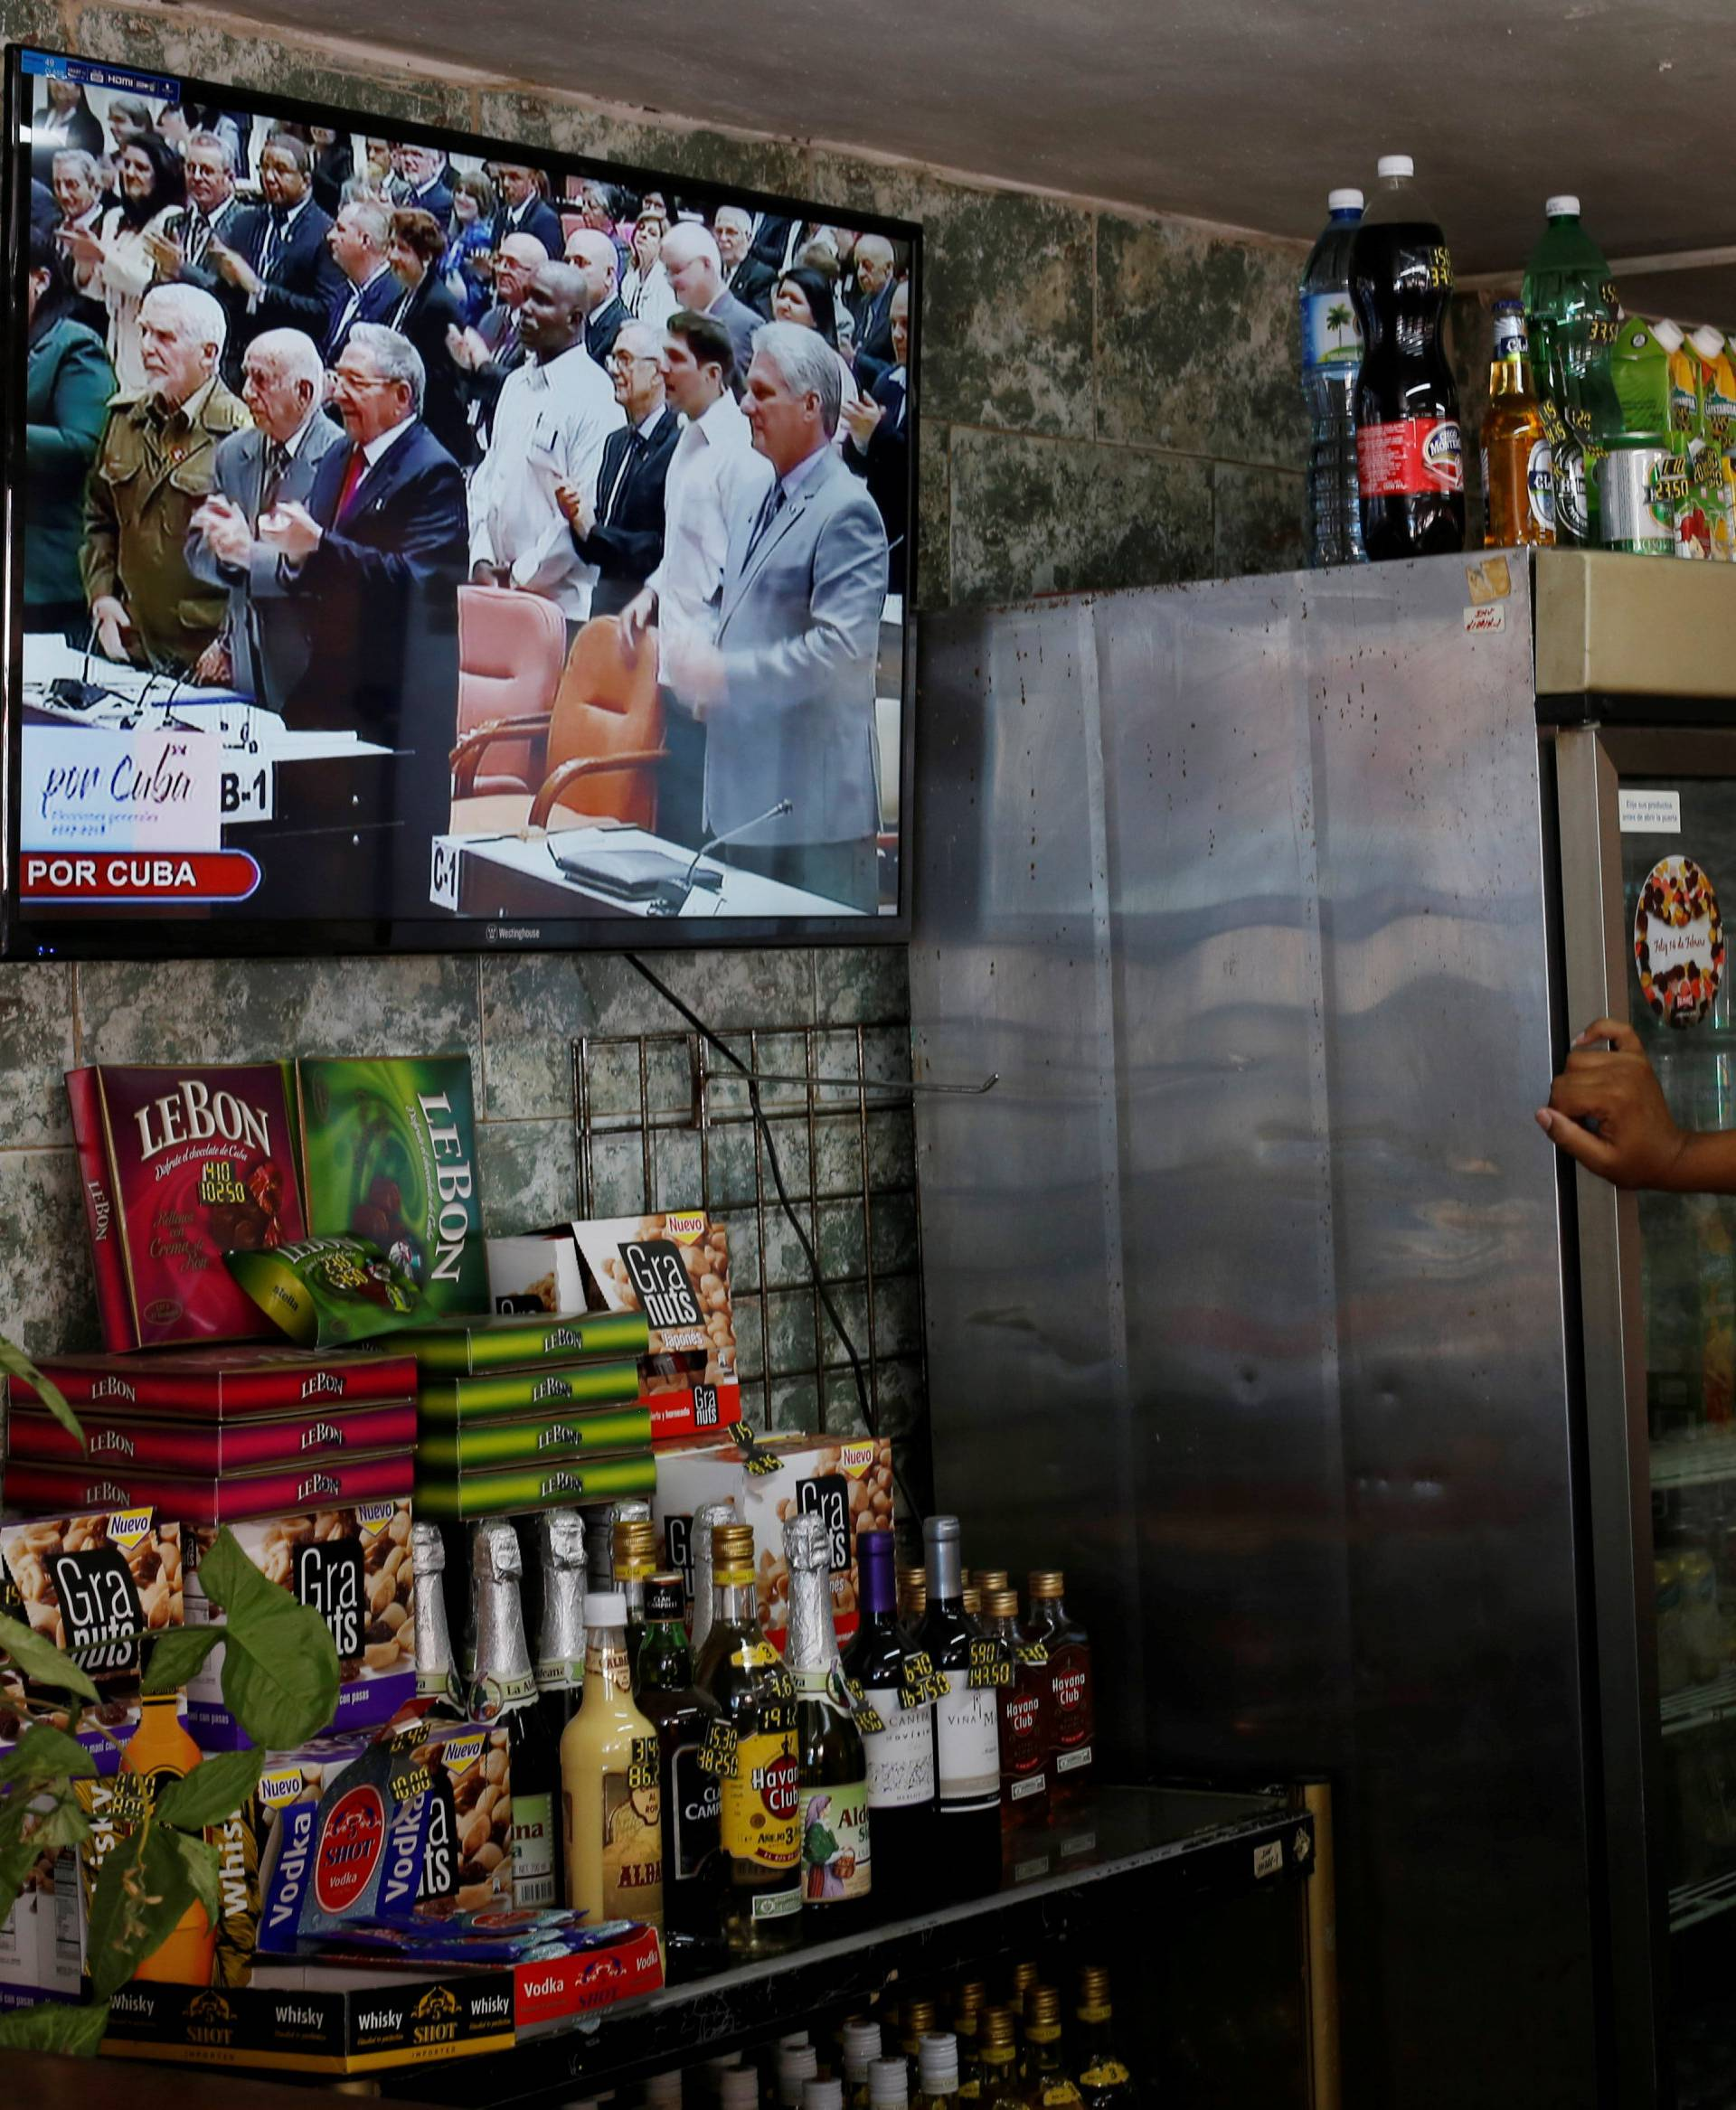 Cuba's President Raul Castro and  First Vice-President Miguel Diaz-Canel are seen on a TV screen inside a restaurant during a session of the National Assembly in Havana